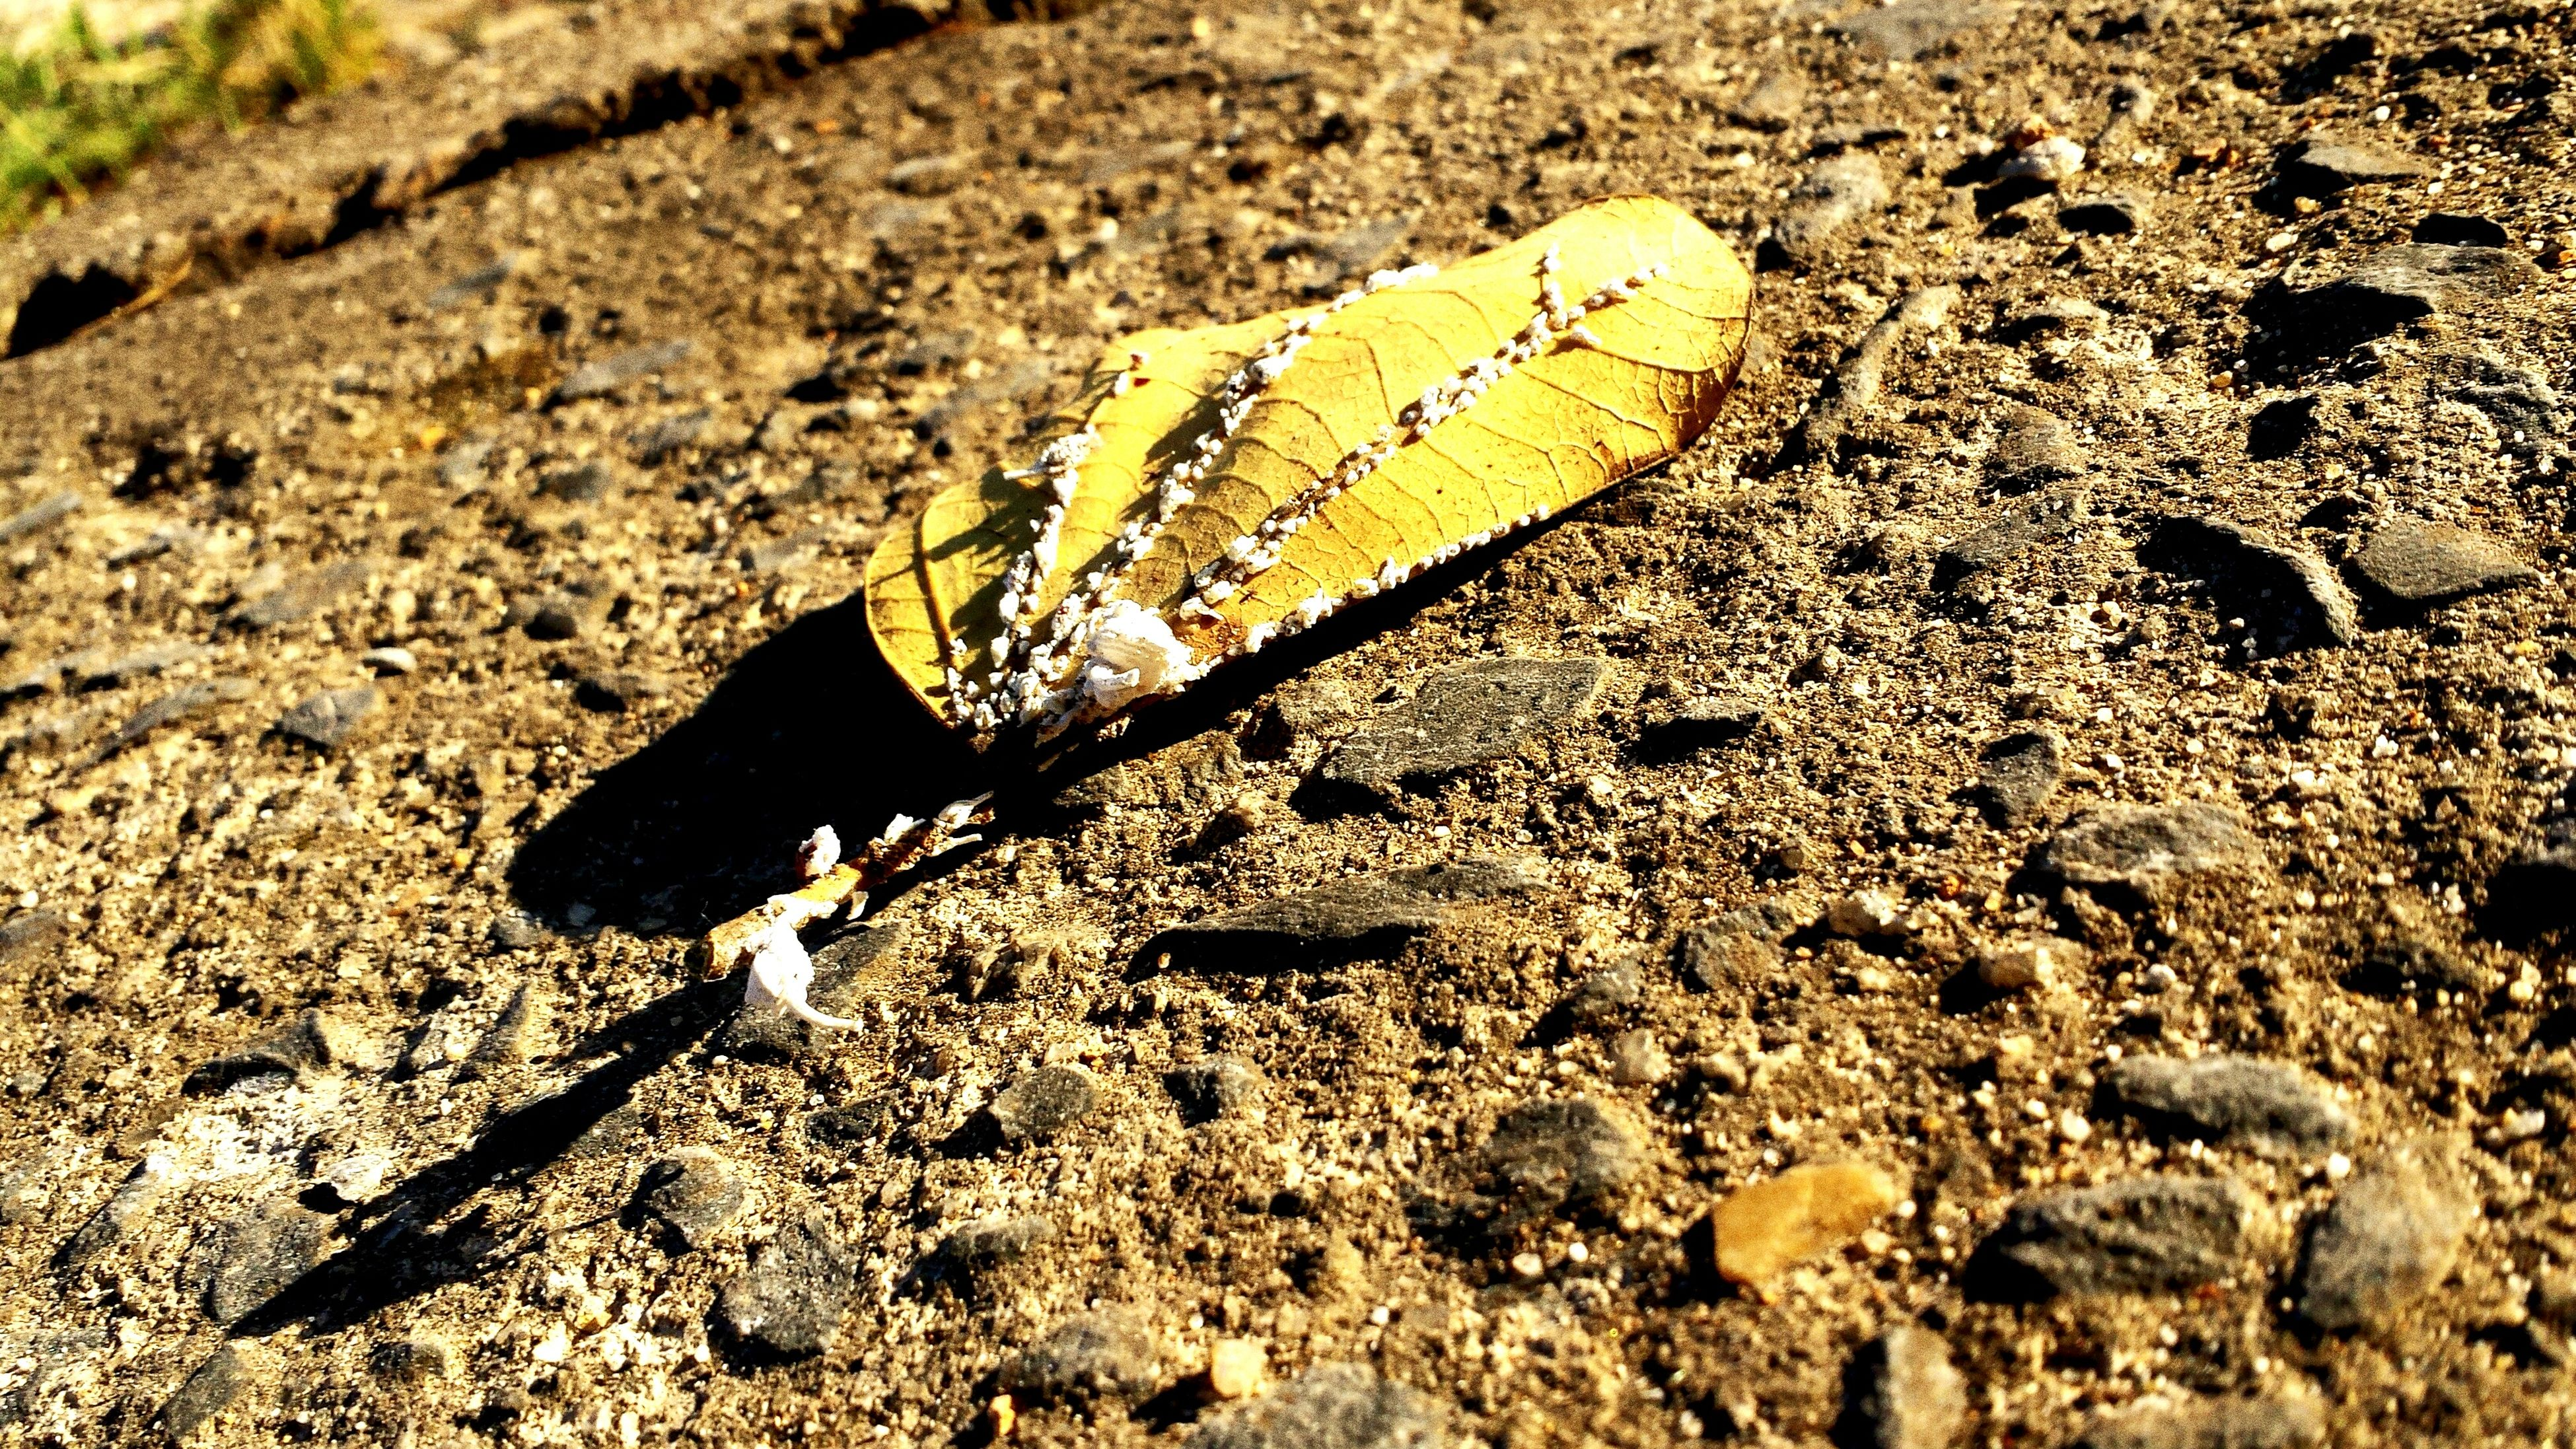 high angle view, yellow, field, day, close-up, insect, sand, ground, dirt, still life, single object, no people, leaf, outdoors, sunlight, one animal, nature, textured, rock - object, dry